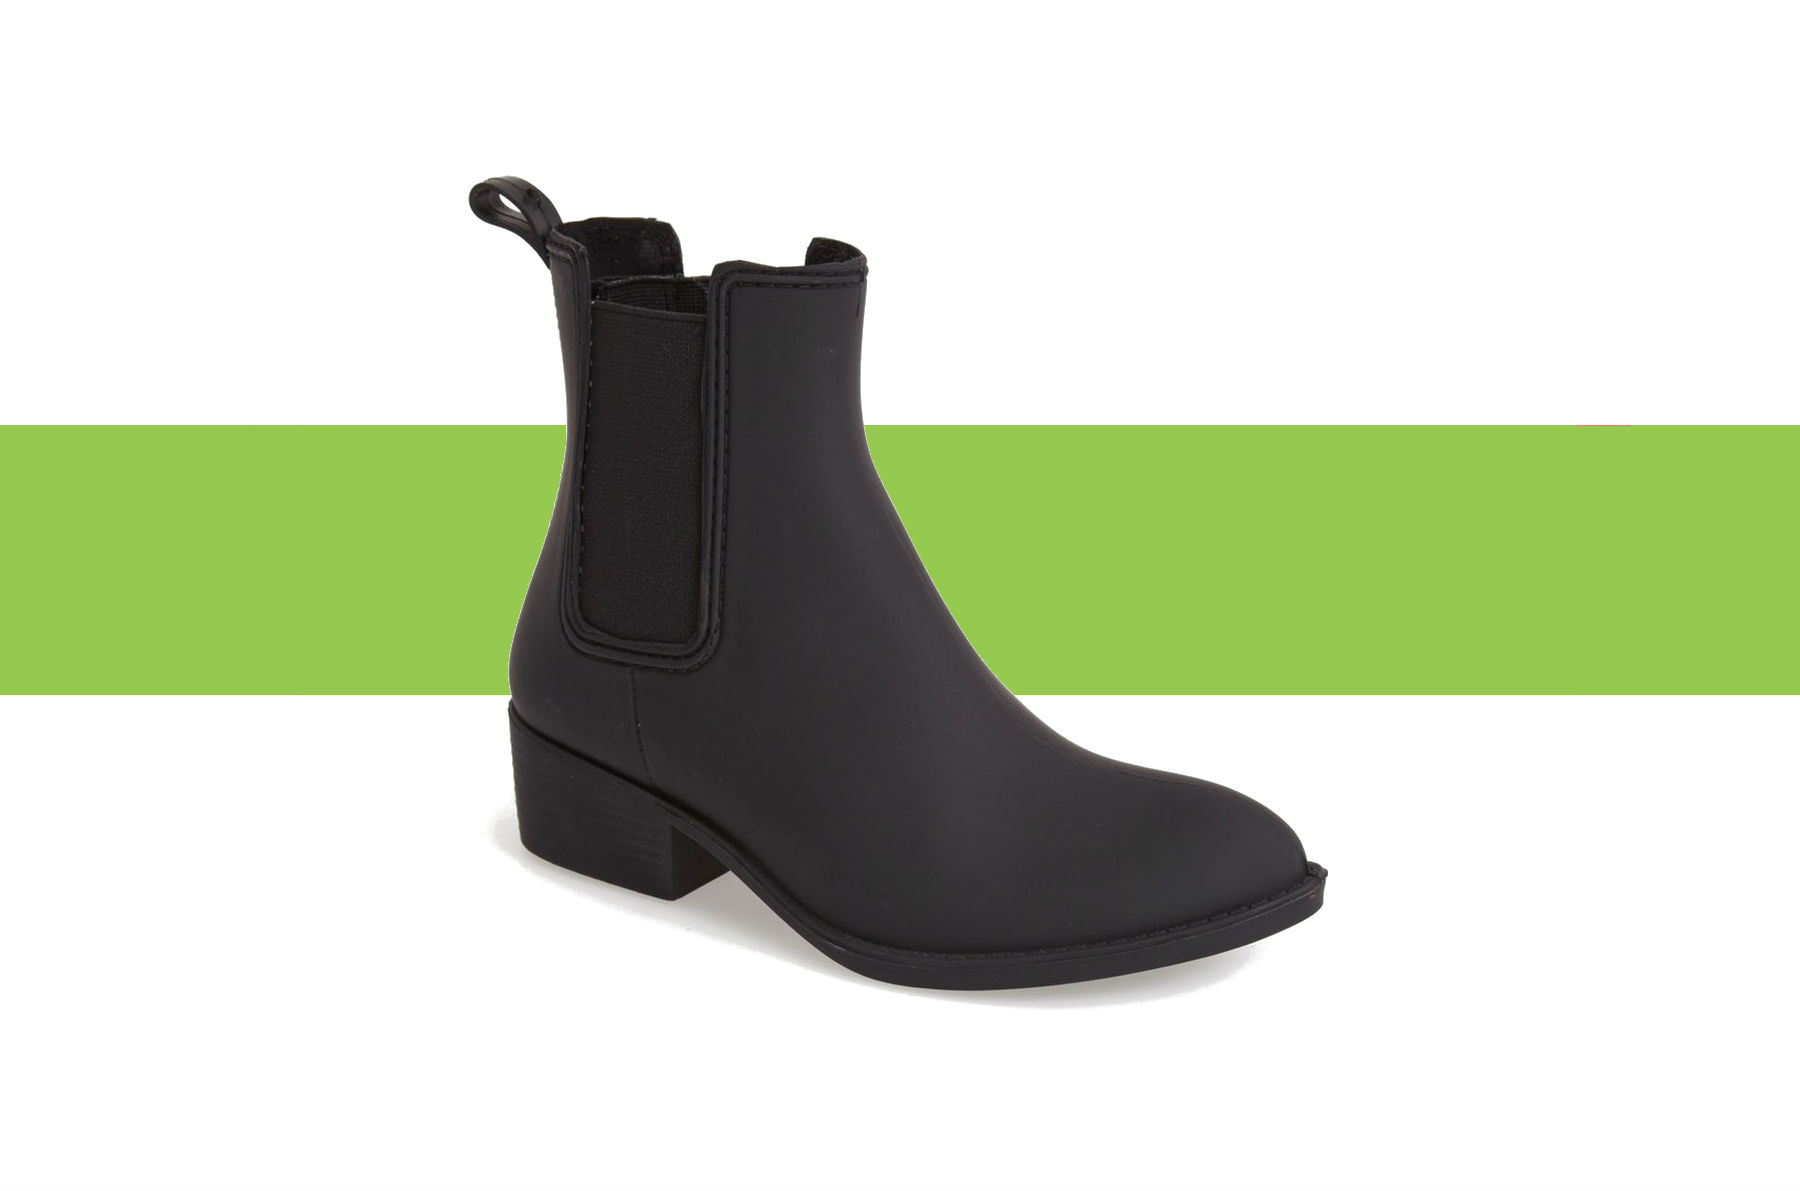 Jeffrey Campbell Stormy Chelsea Rain Boots in black